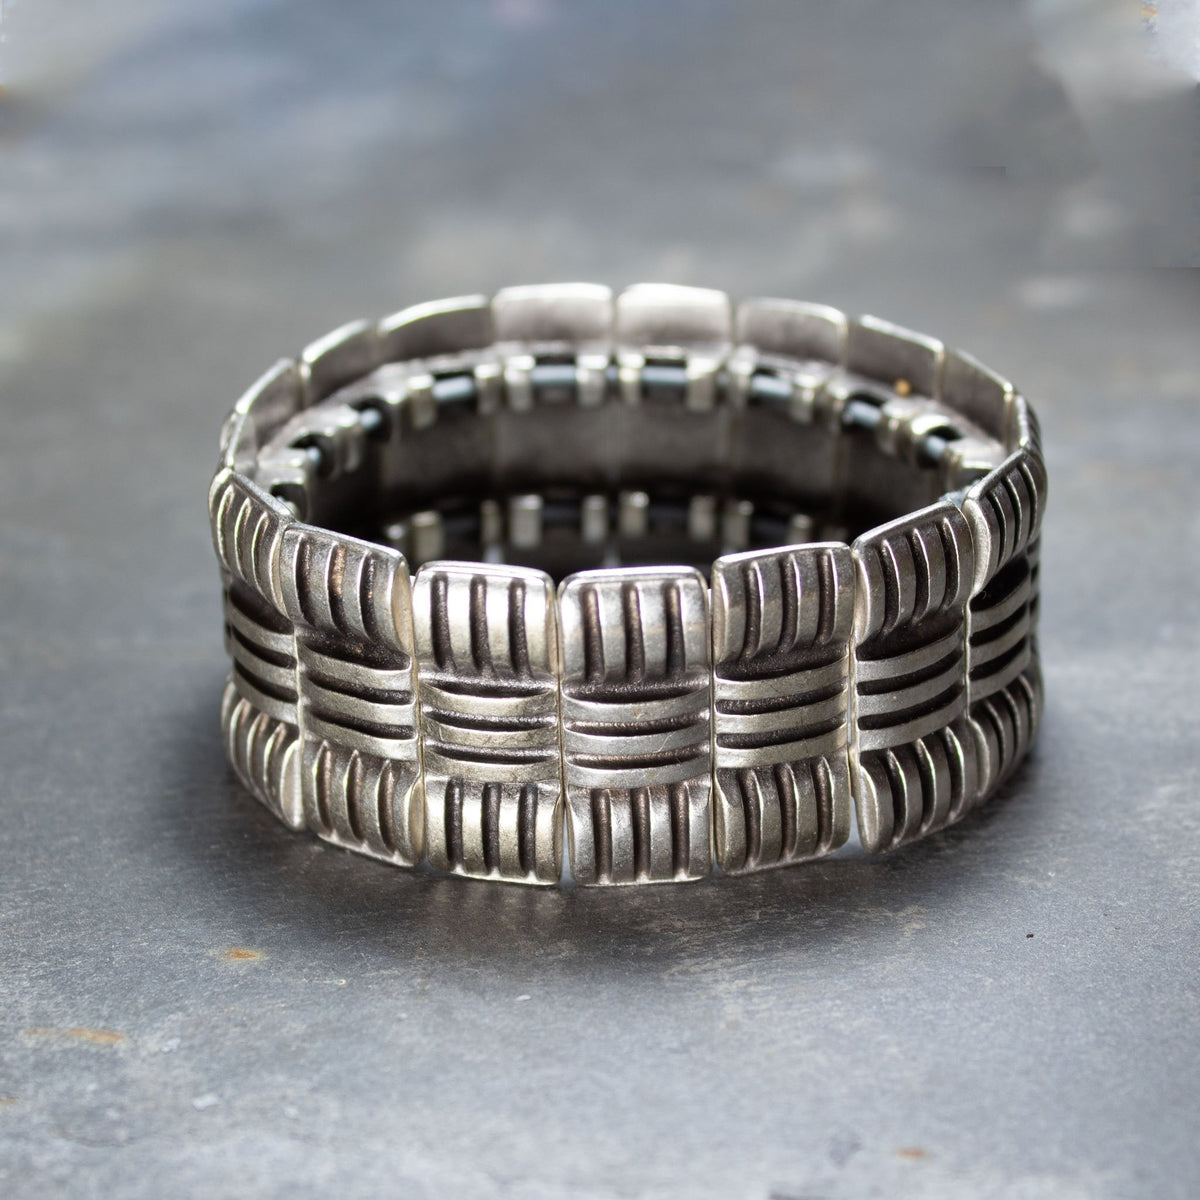 Chunky Metal Cuff Bracelet | Bracelet - The Naughty Shrew